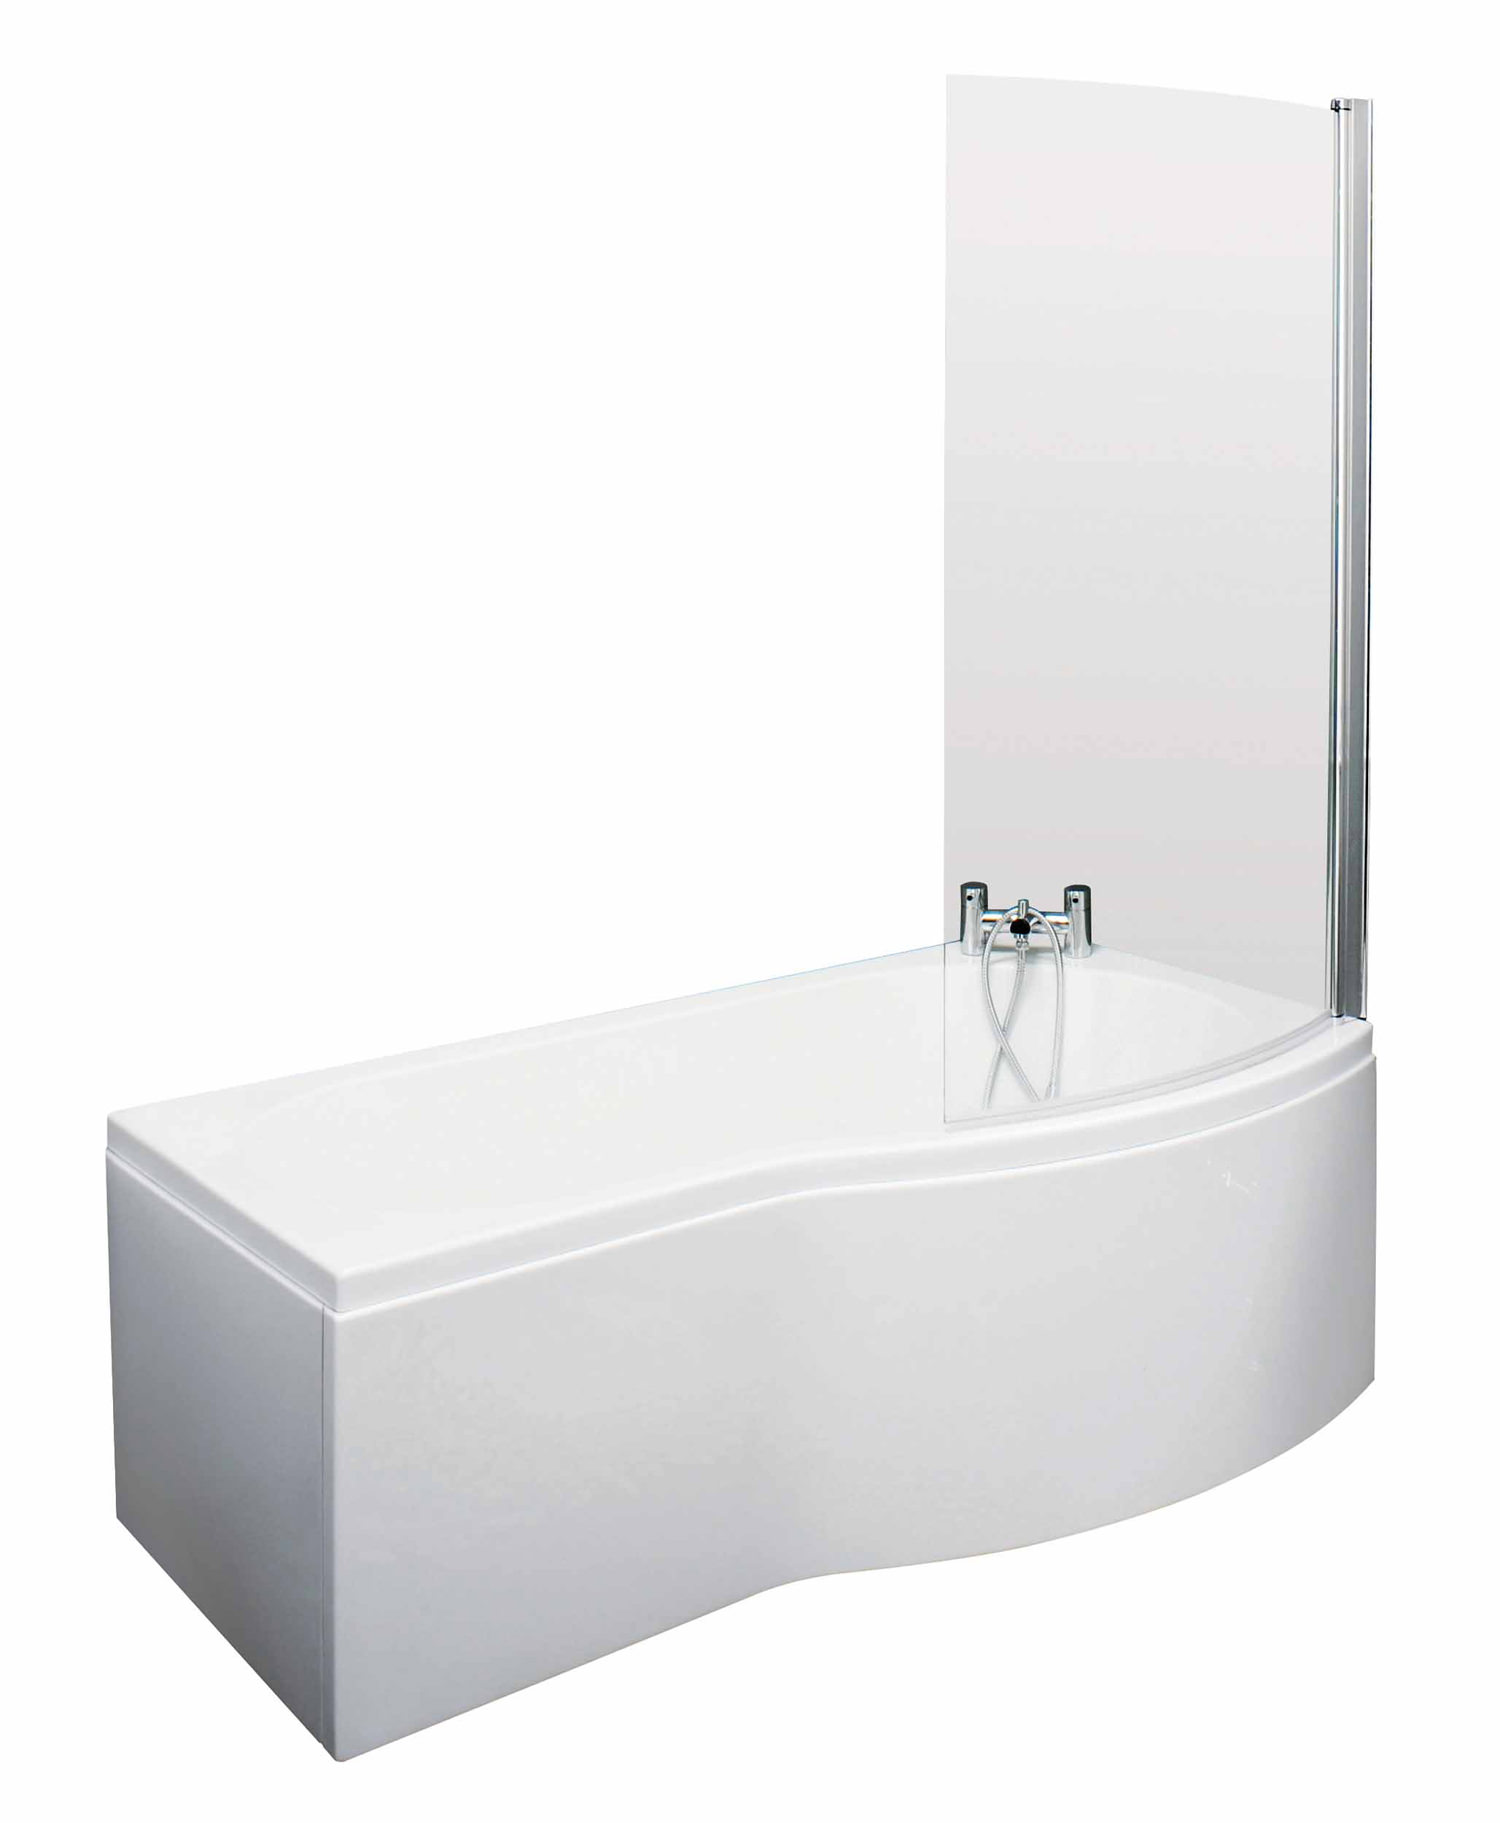 lauren 1500mm curved shower bath with screen and side